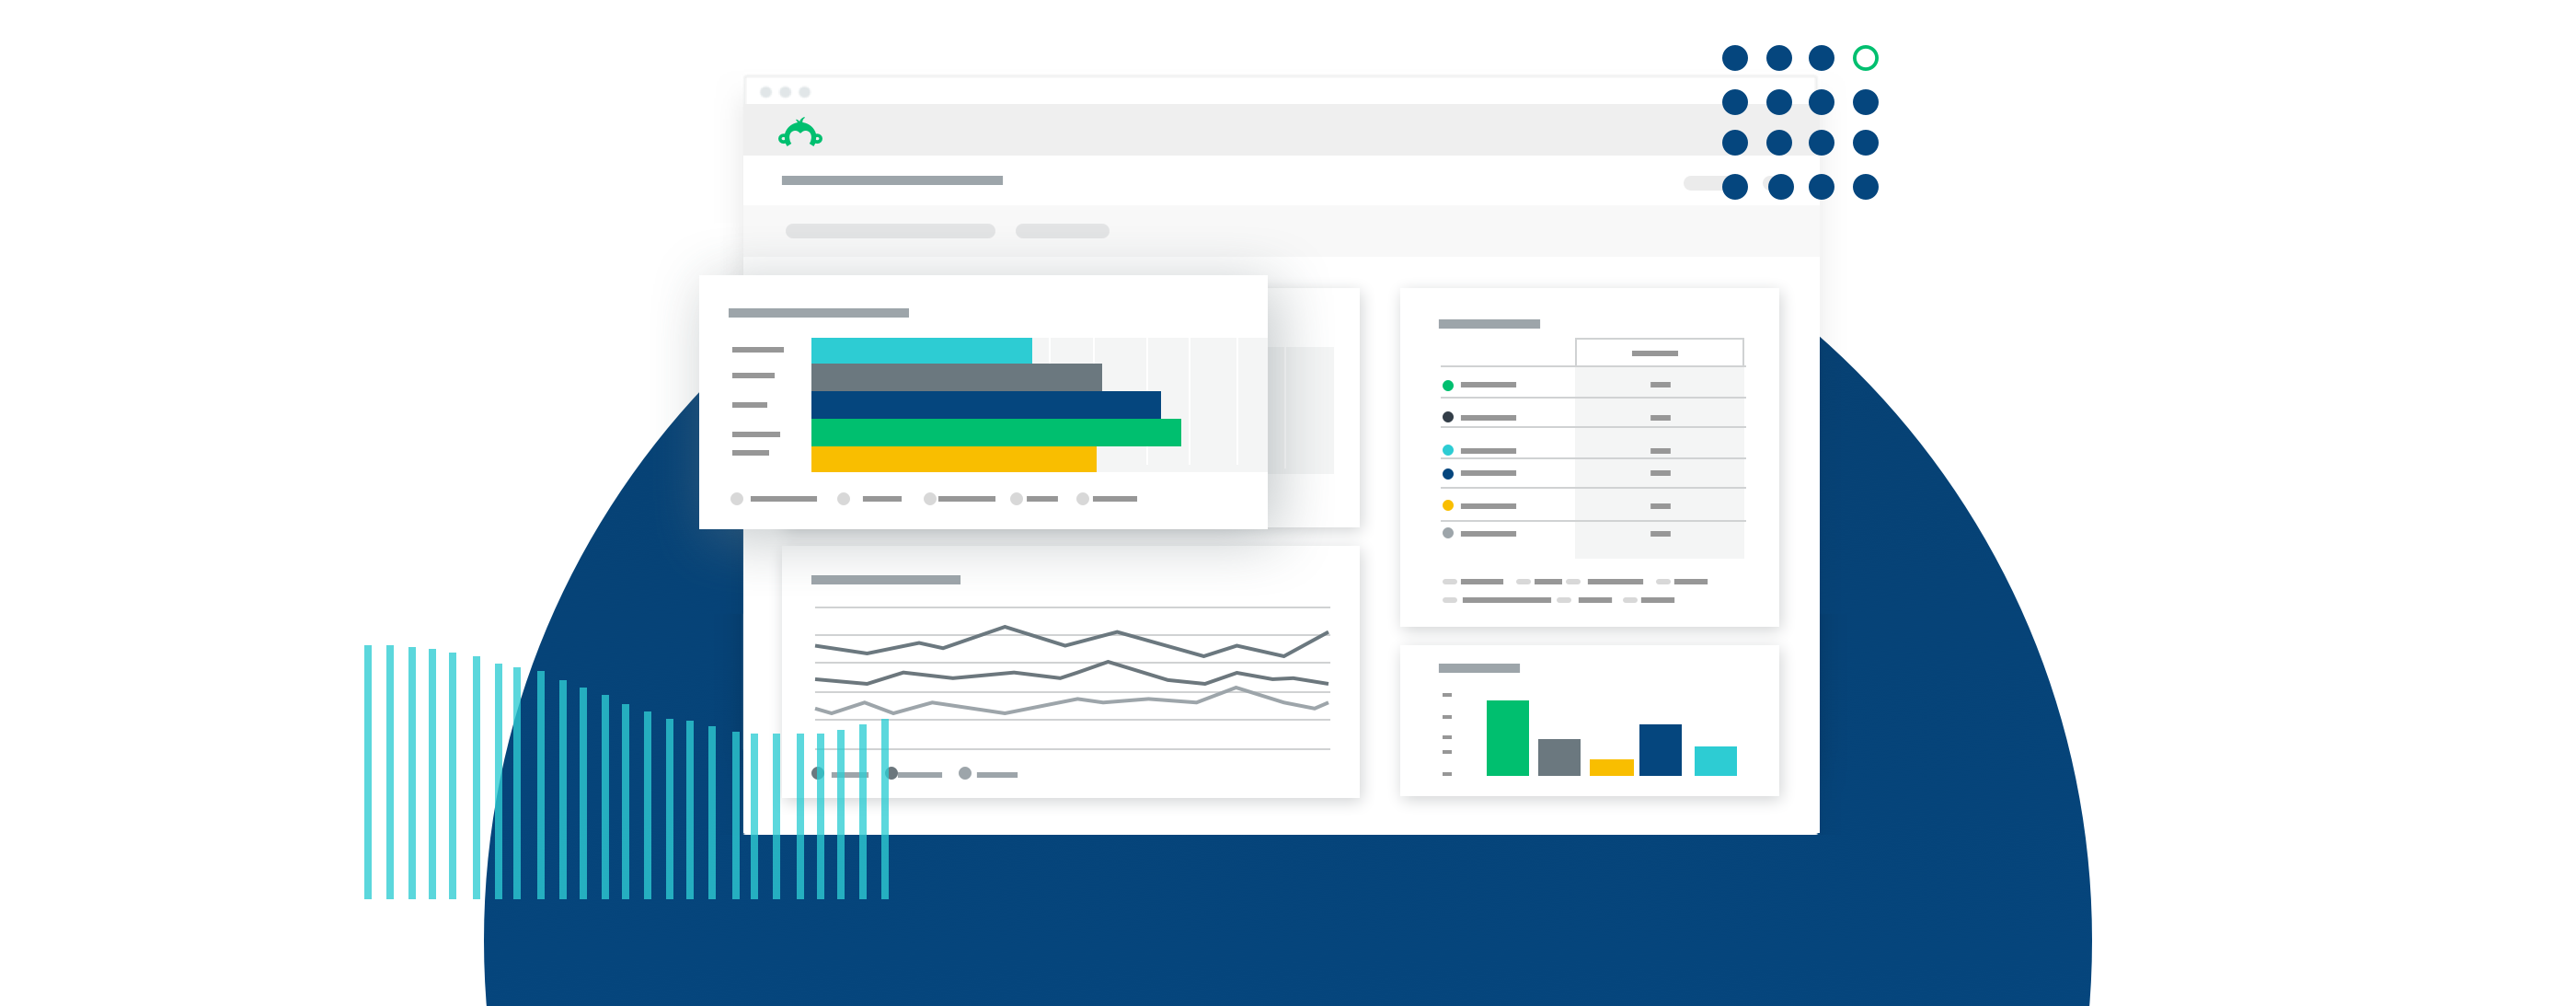 Dashboard for market research